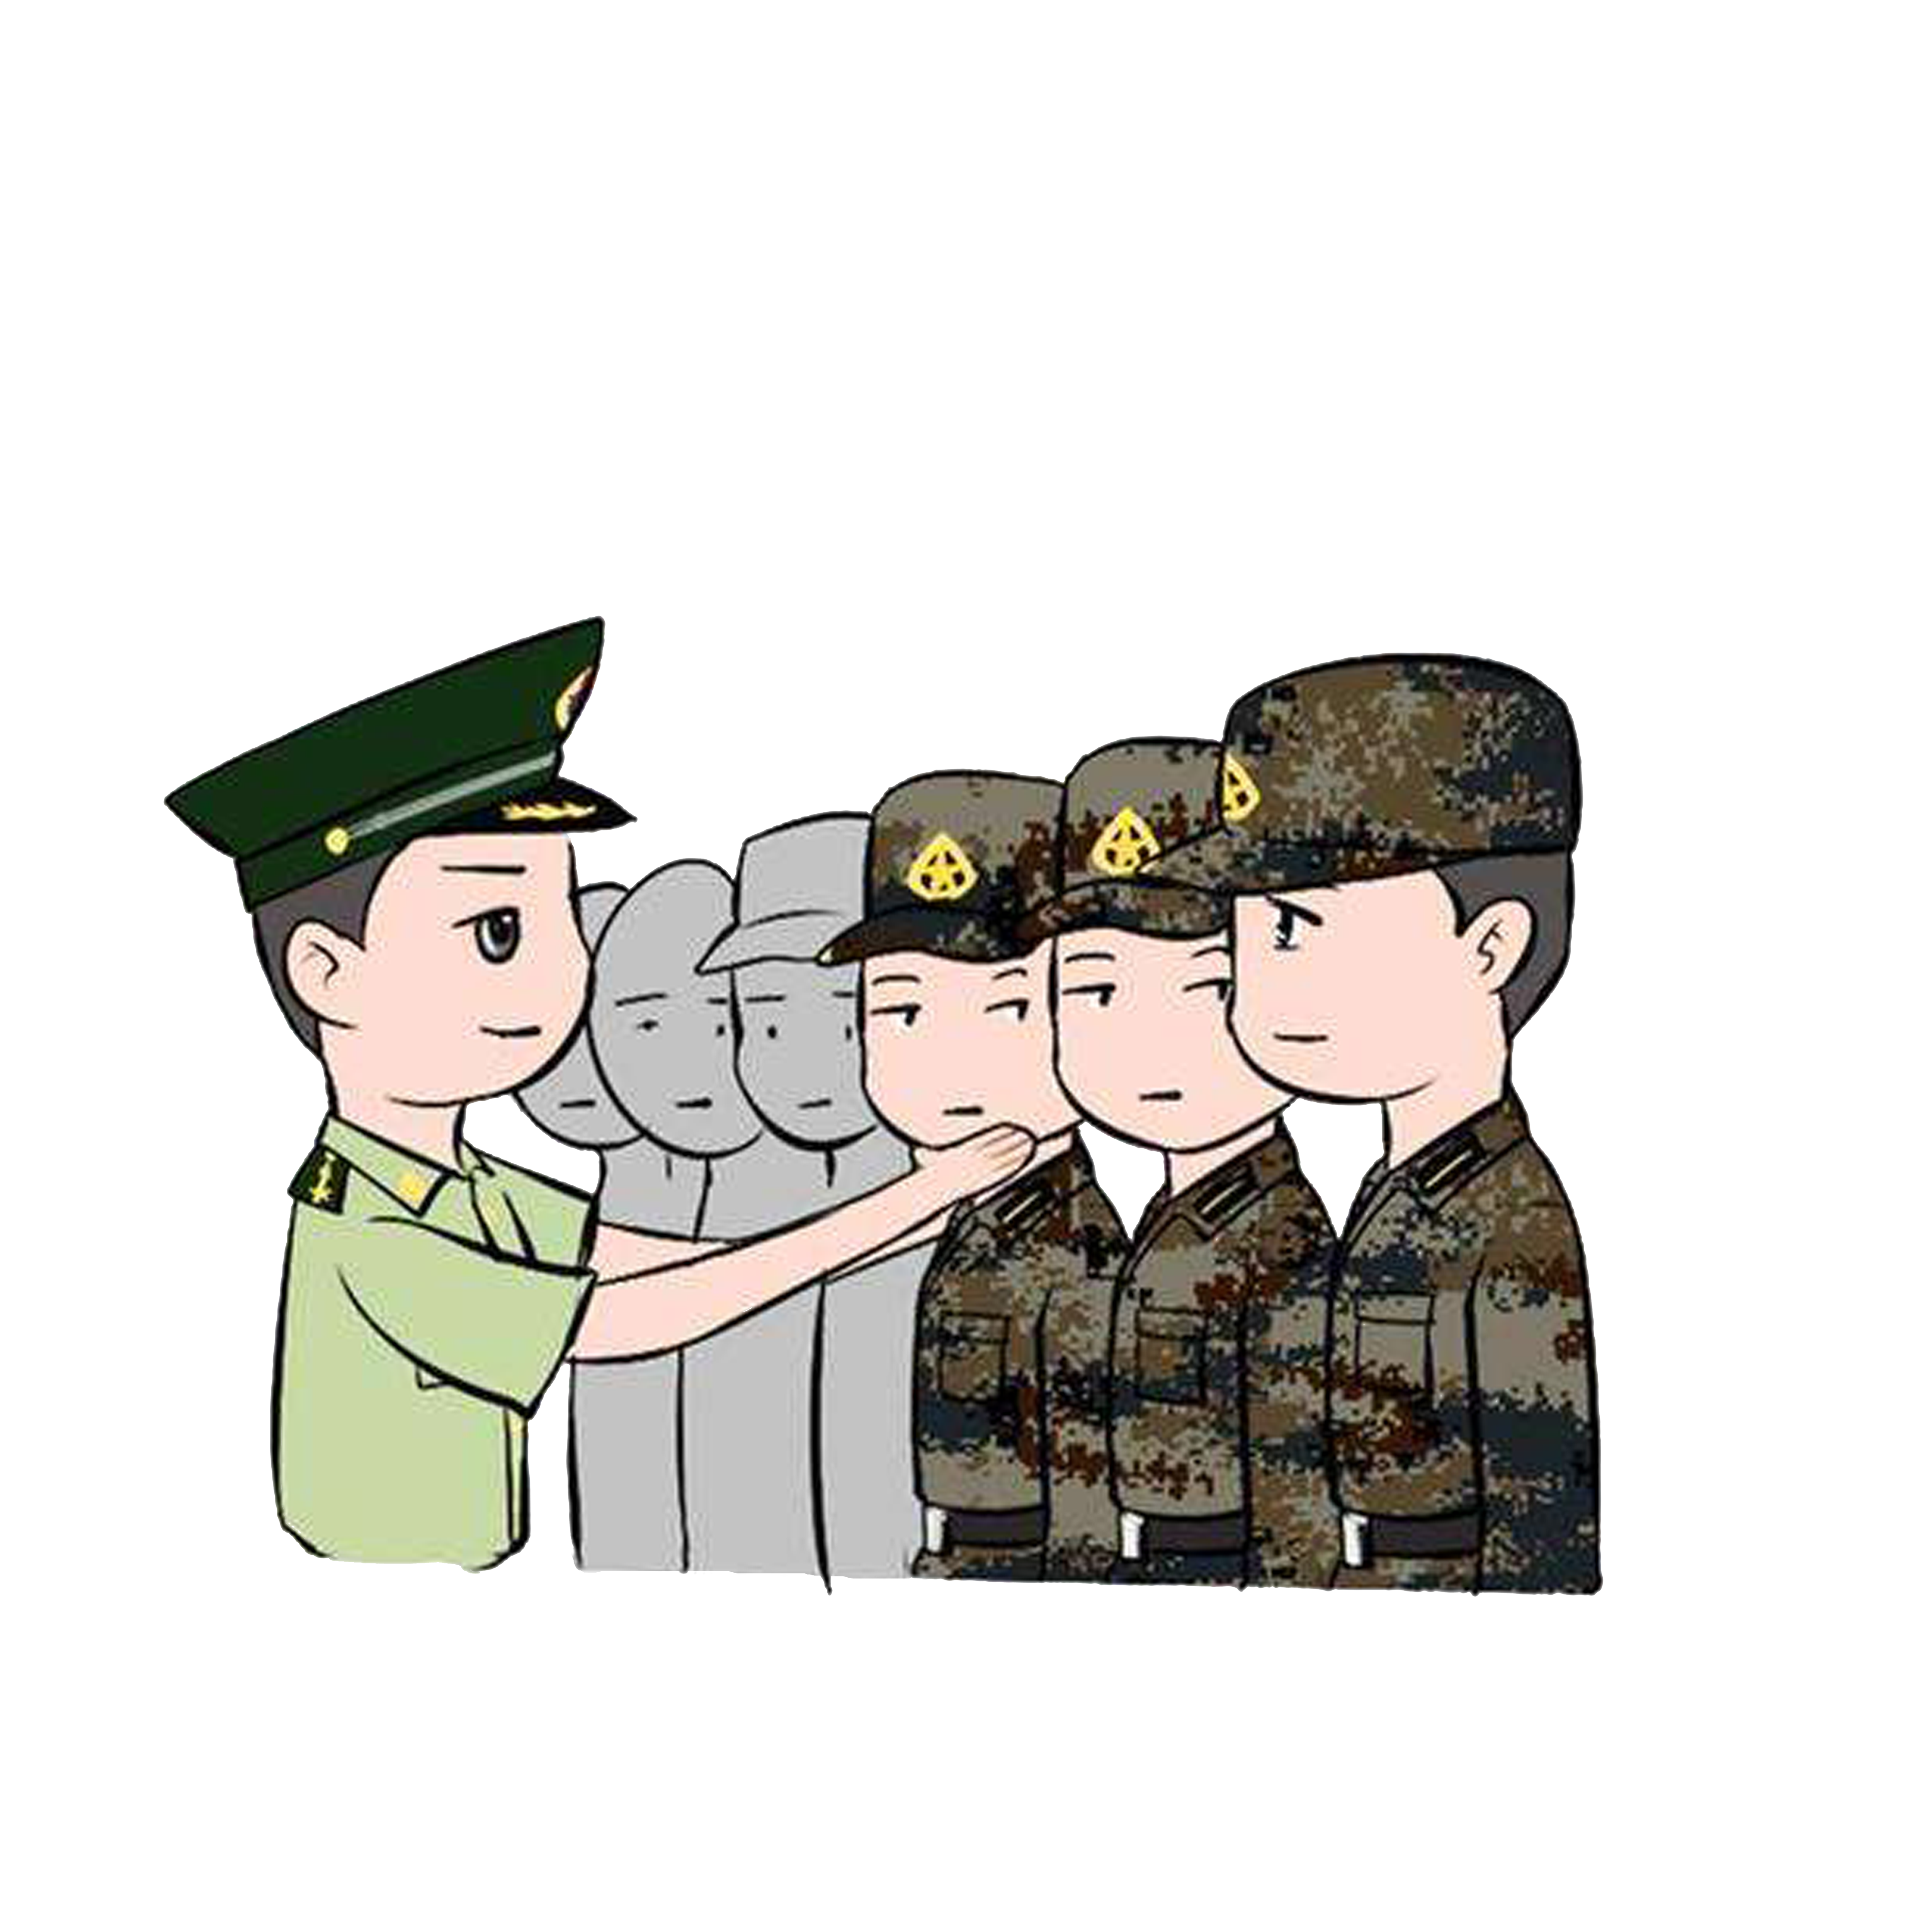 clip library download Bagel drawing animated. Military cartoon animation illustration